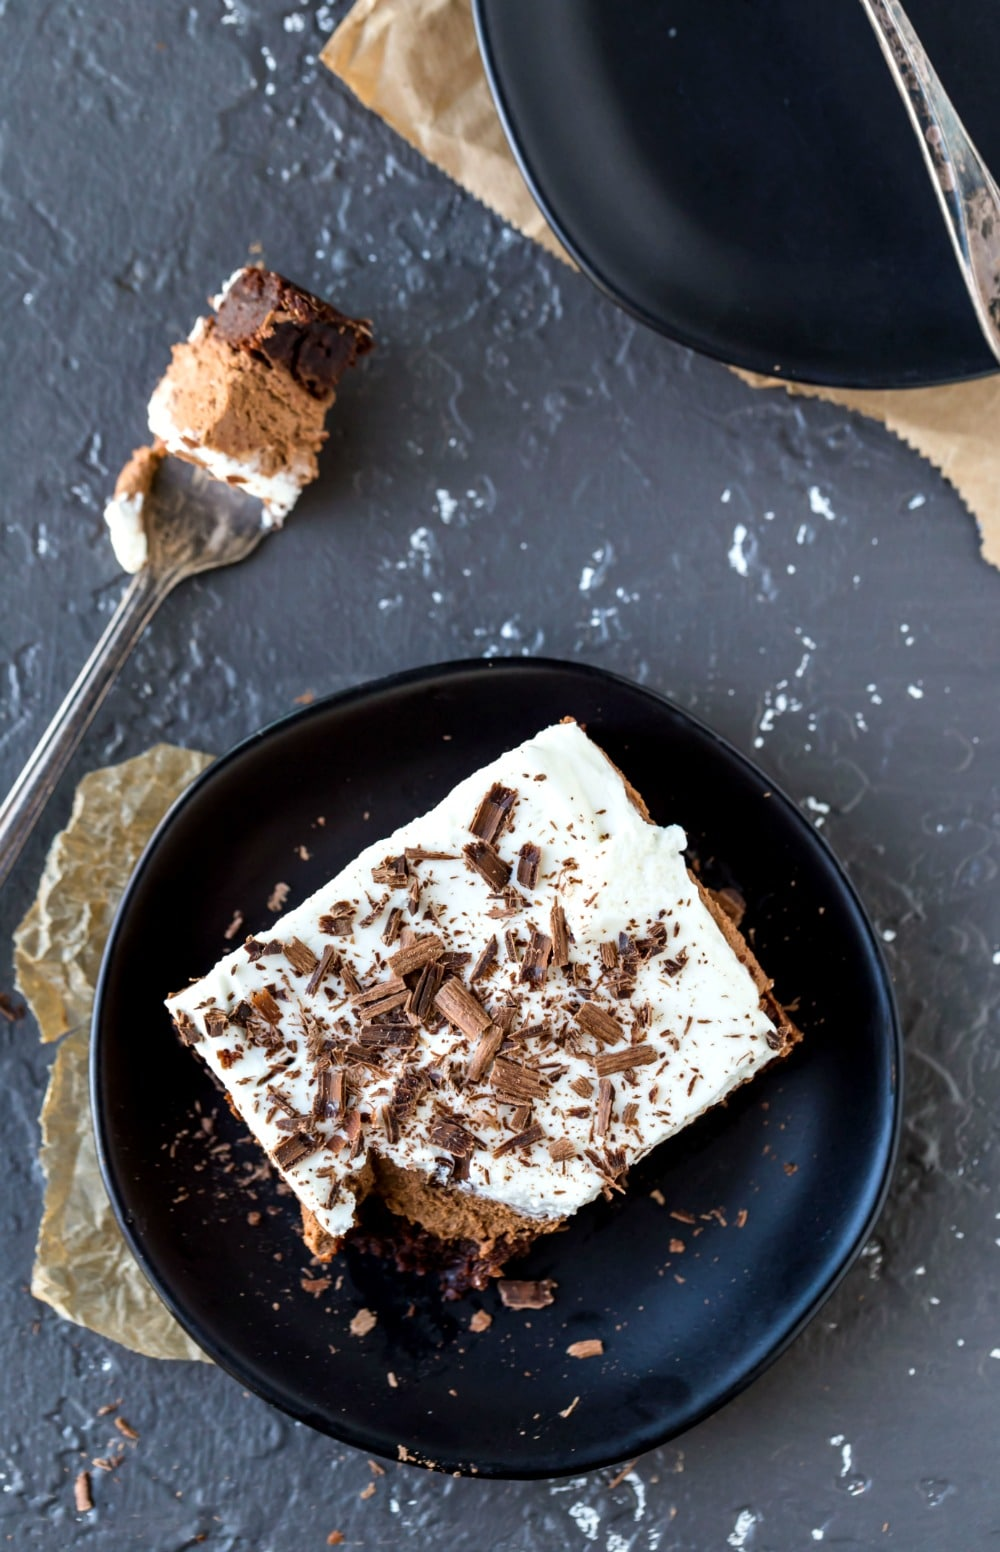 Overhead picture of French silk brownies with bite on fork next to the plate